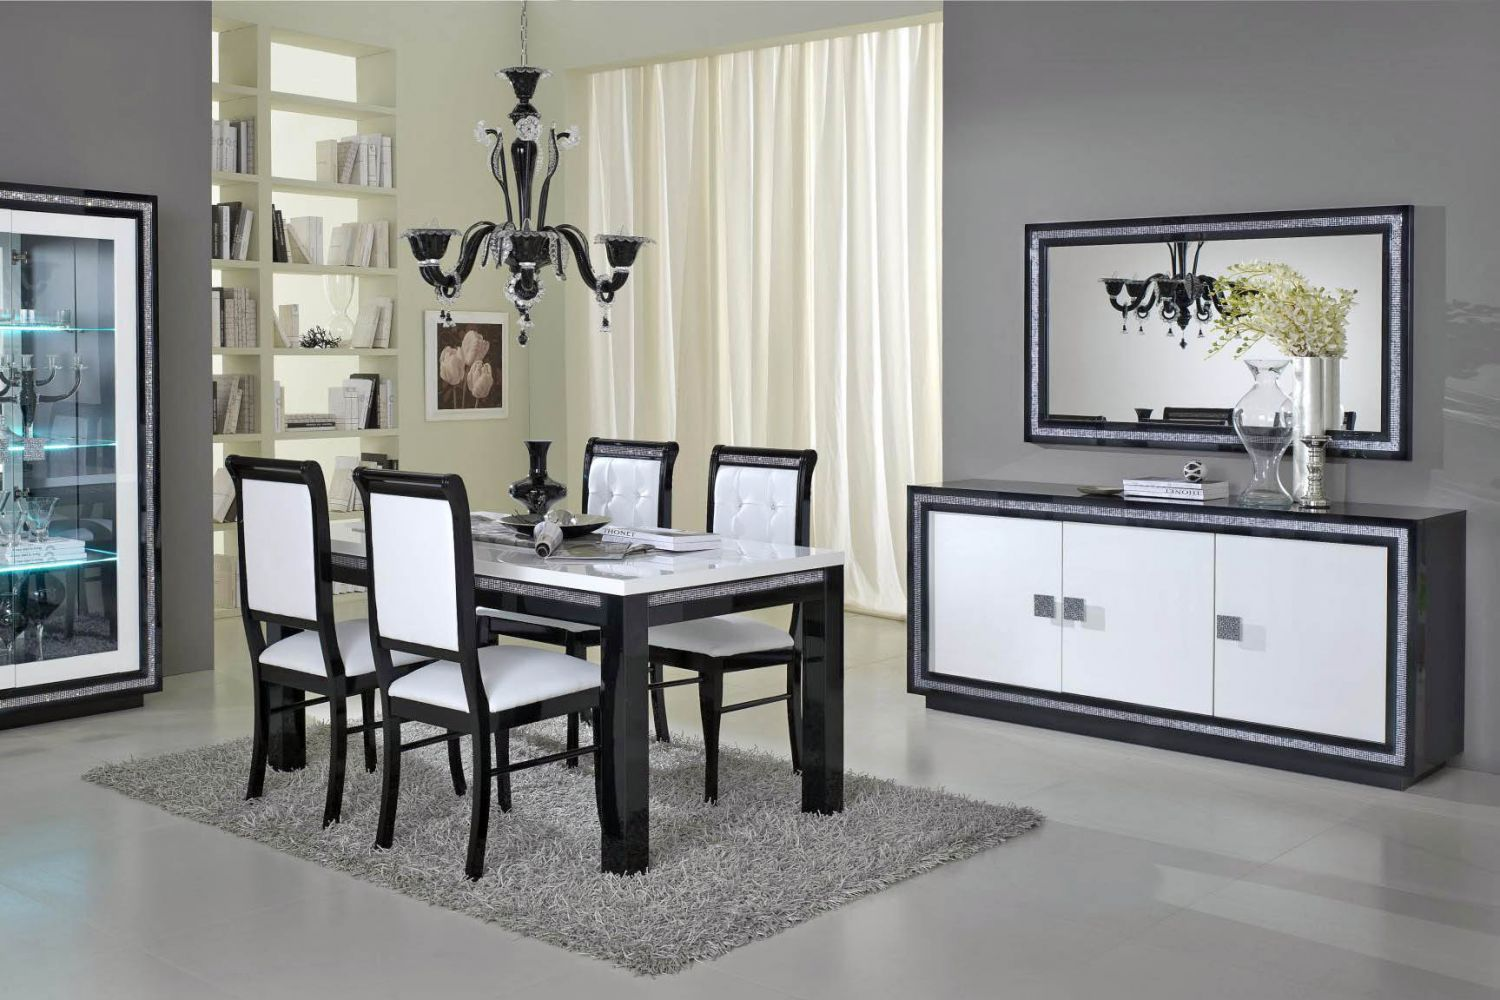 salle manger meubl et design blanc meuble et d coration marseille mobilier design. Black Bedroom Furniture Sets. Home Design Ideas